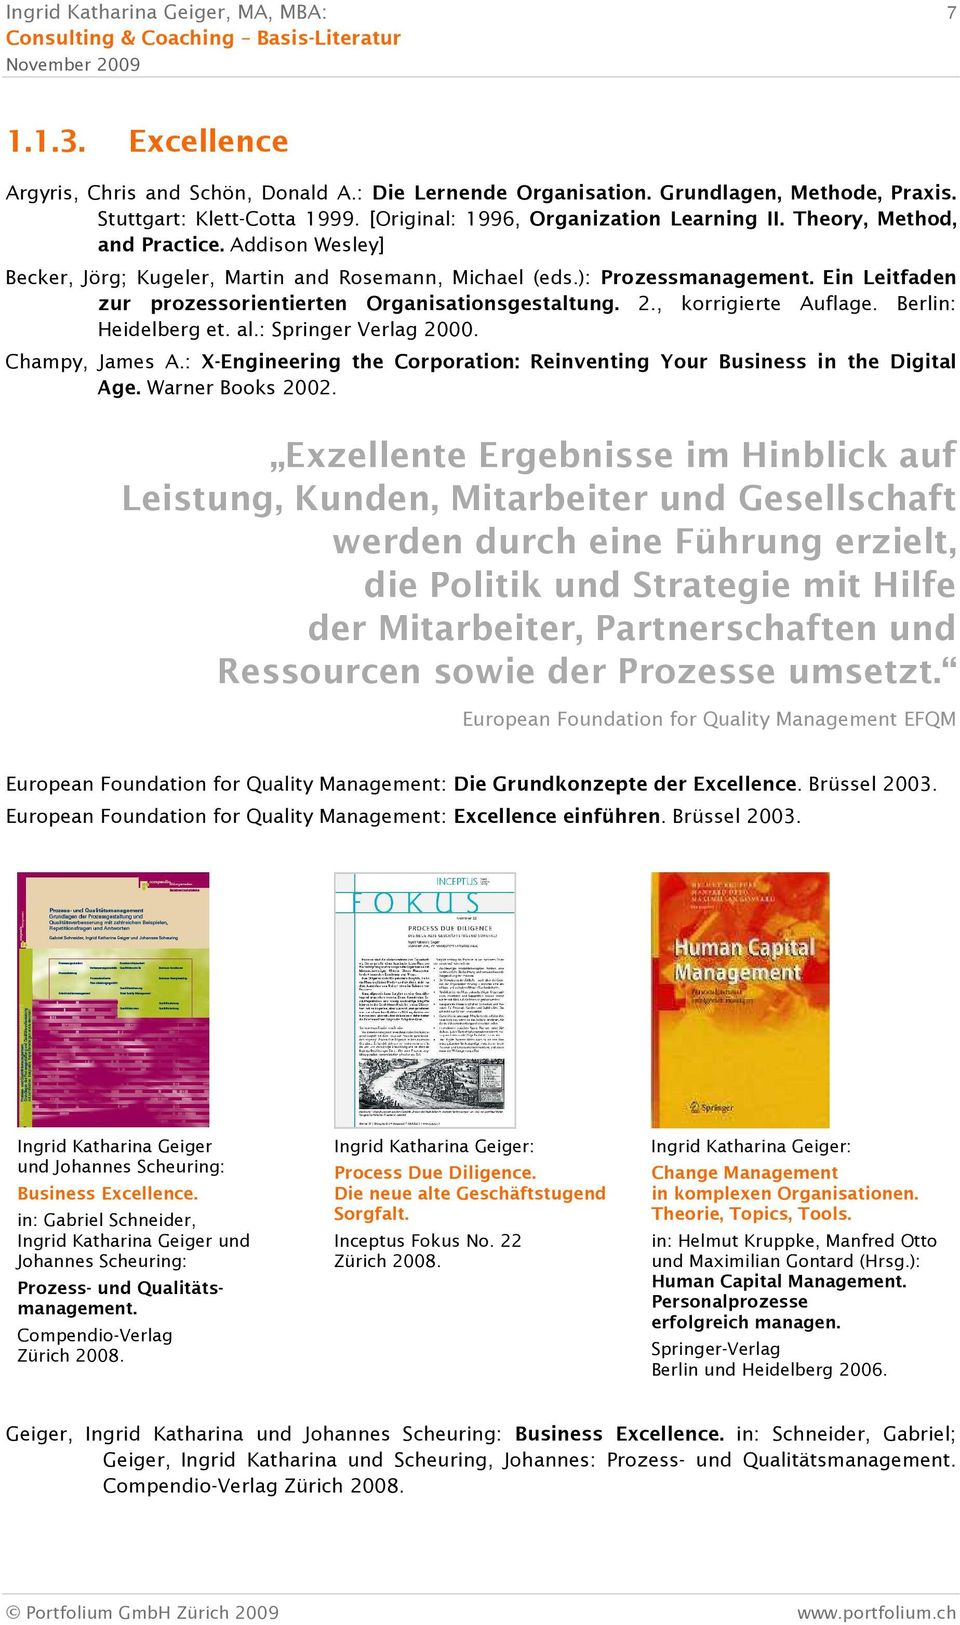 , korrigierte Auflage. Berlin: Heidelberg et. al.: Springer Verlag 2000. Champy, James A.: X-Engineering the Corporation: Reinventing Your Business in the Digital Age. Warner Books 2002.